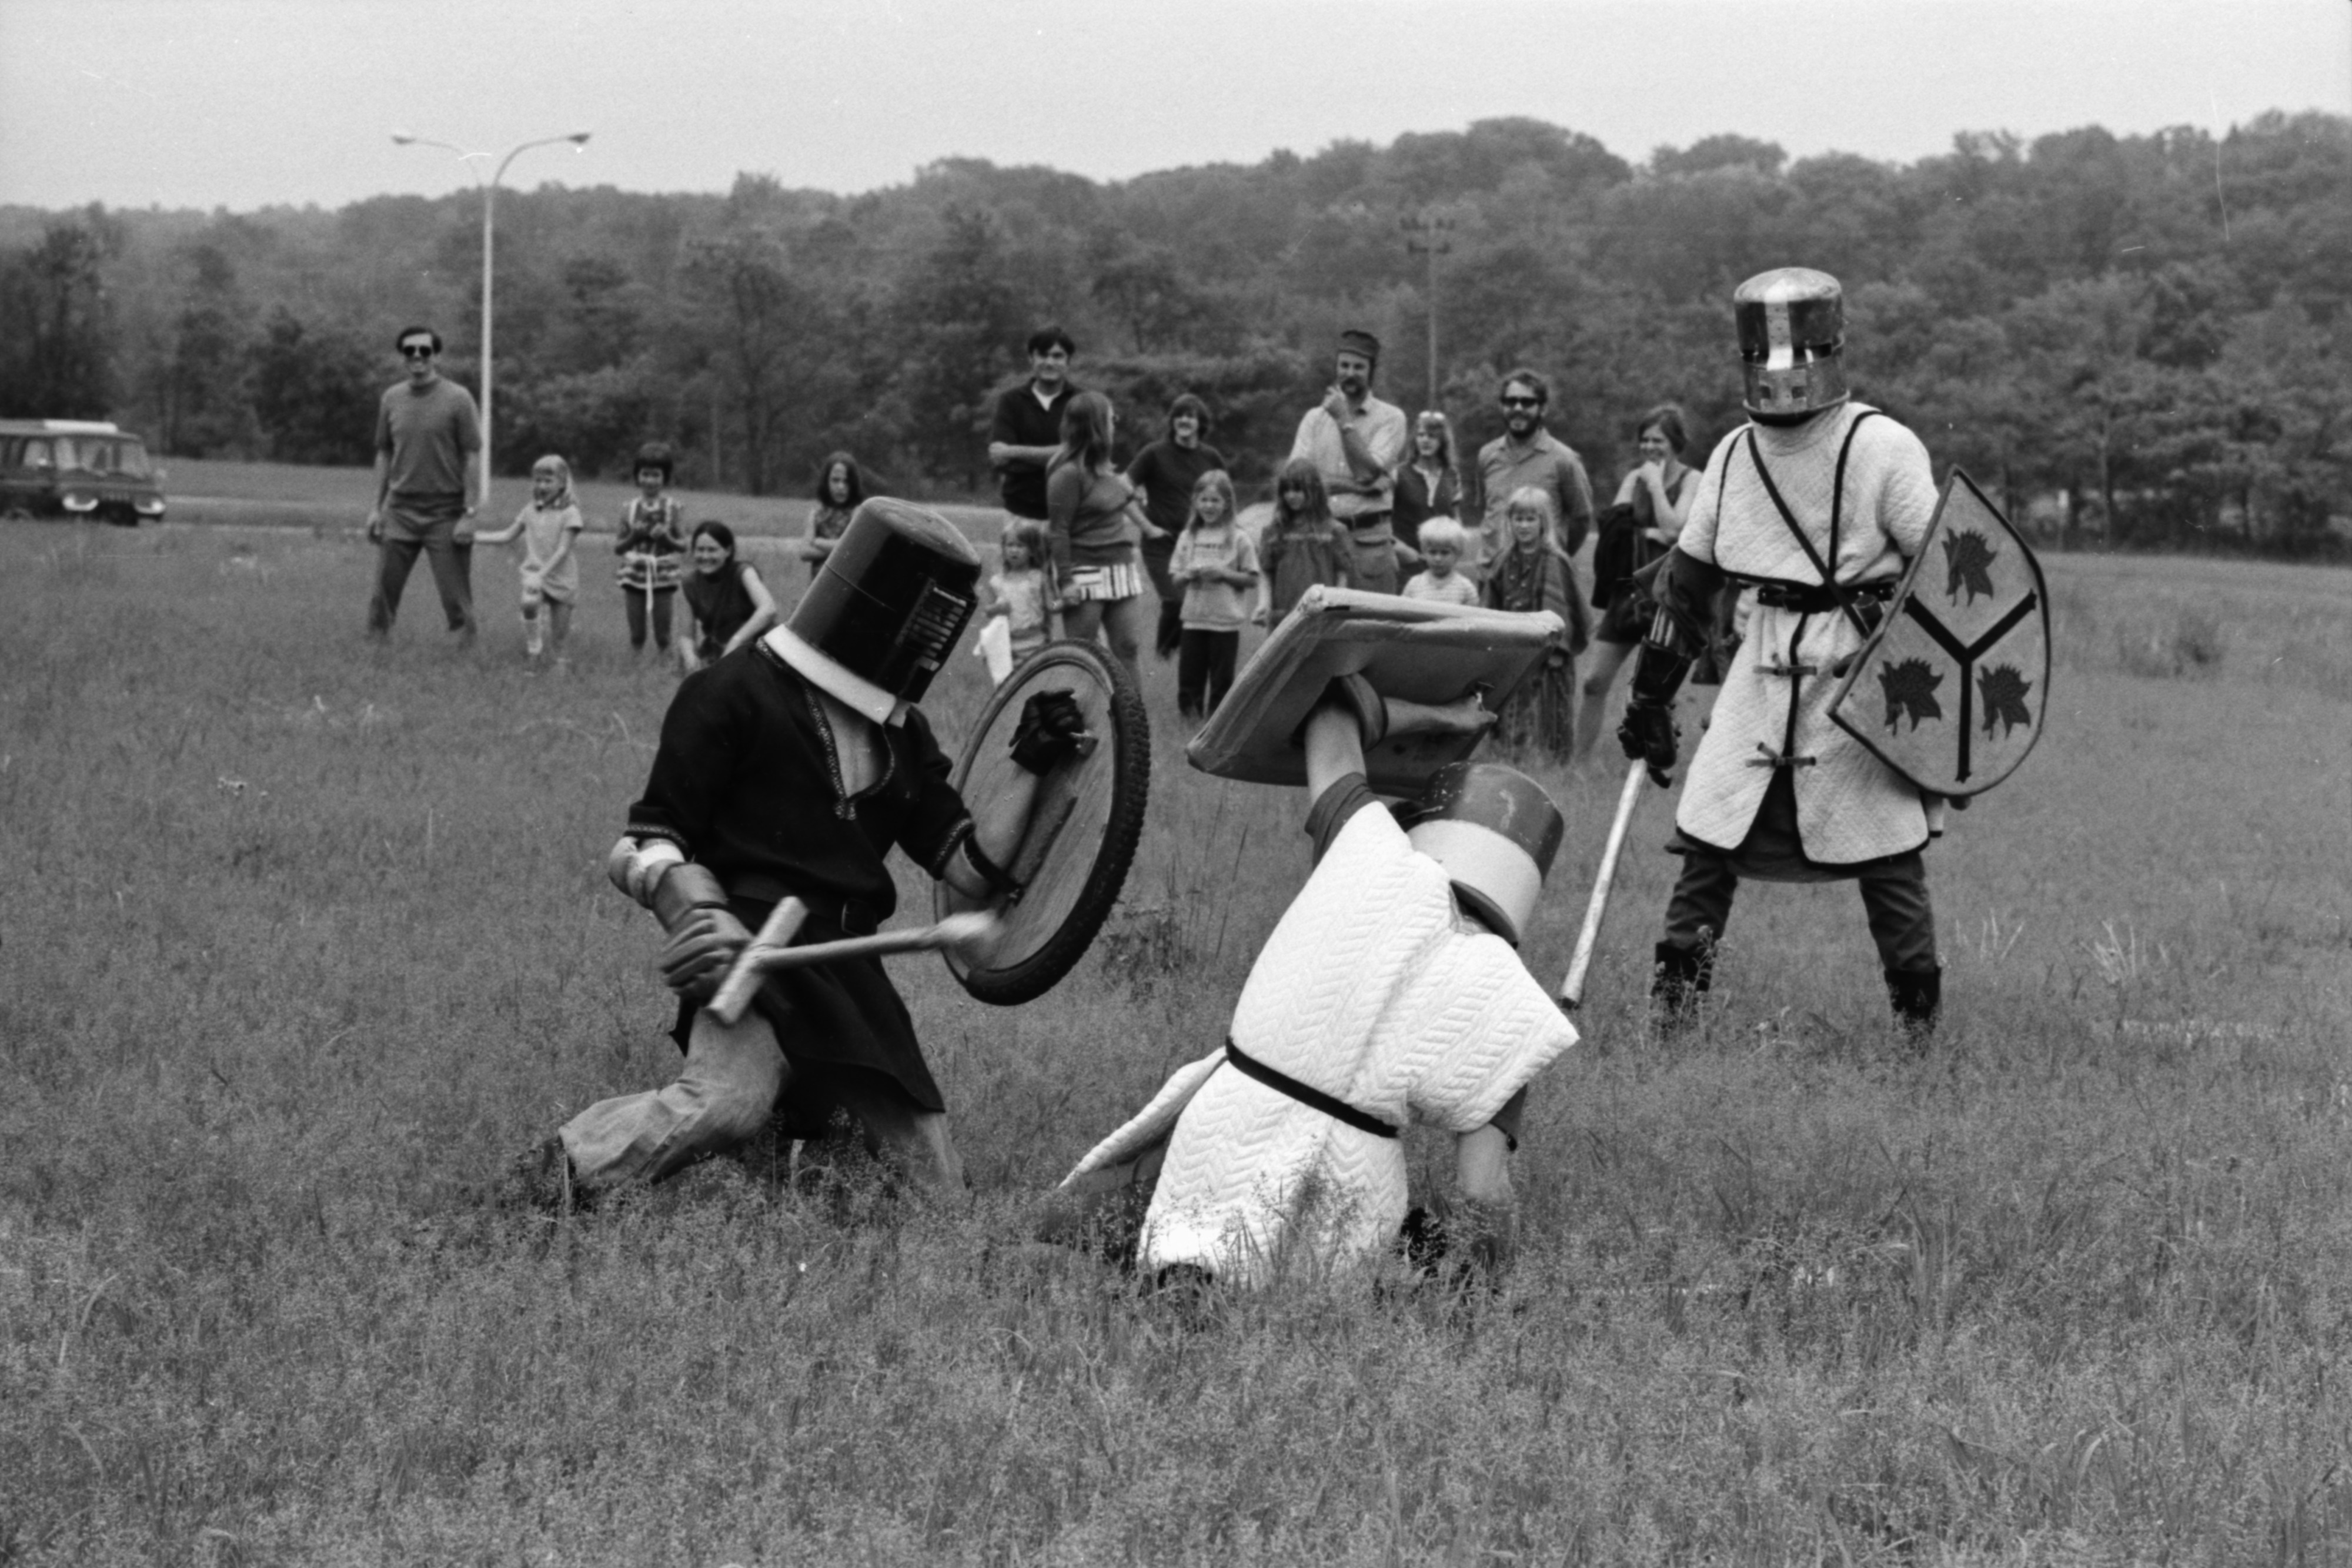 Sword Fight at Medieval Festival at Huron High School, June 1972 image